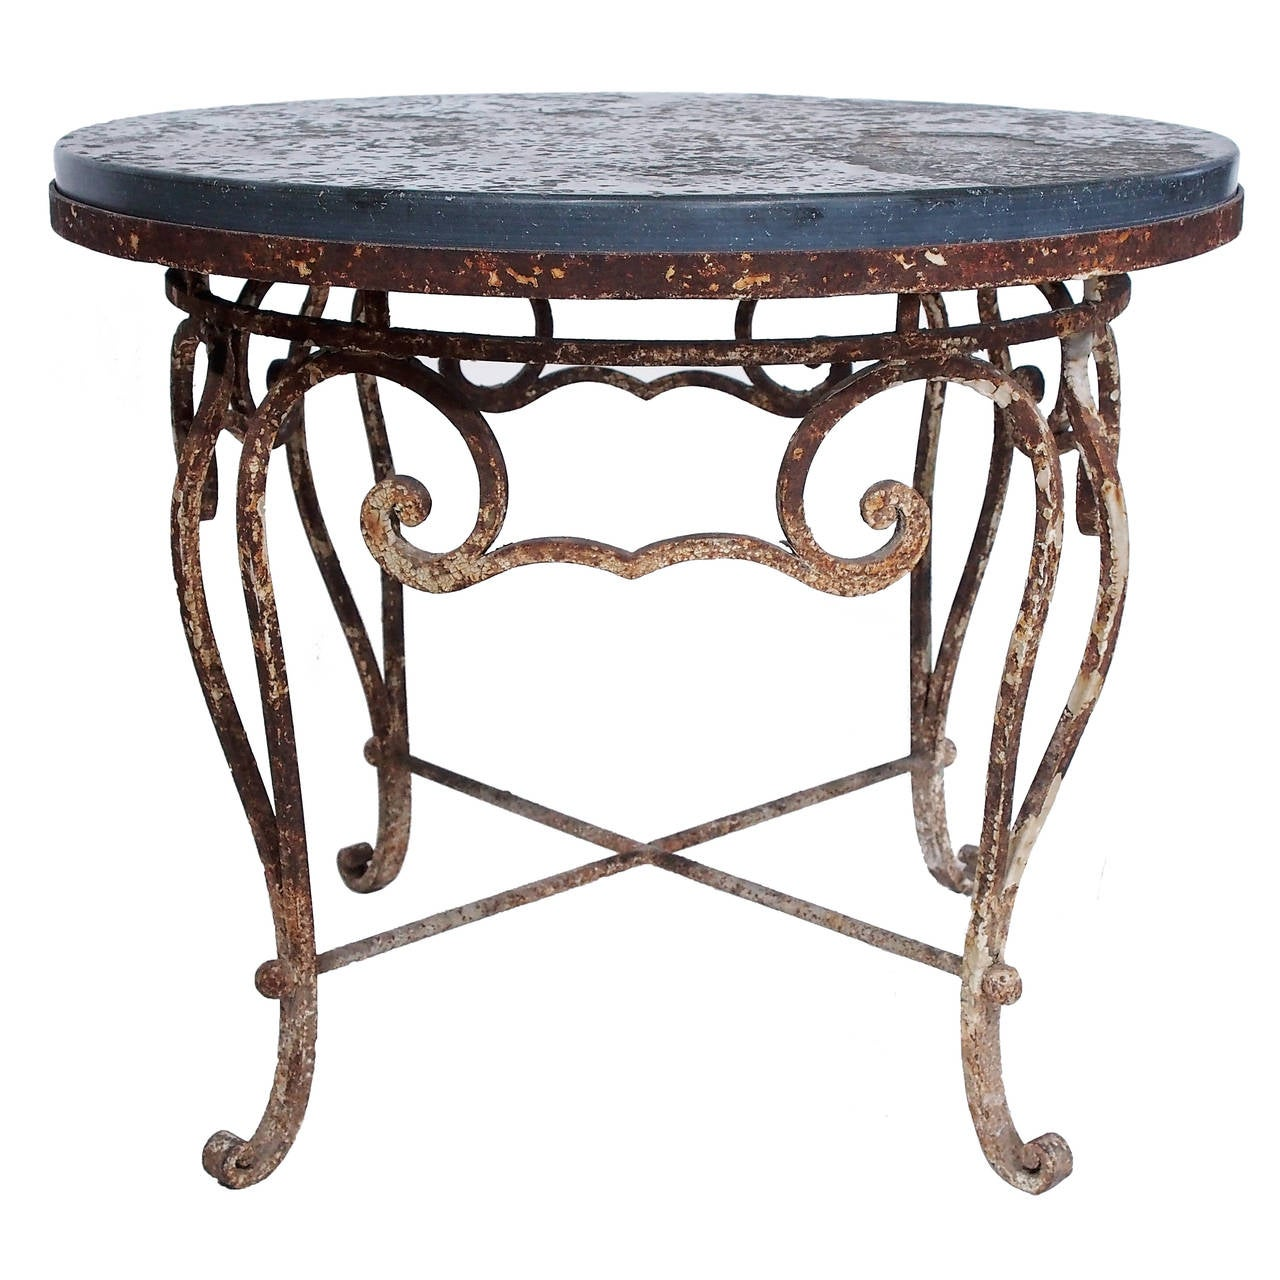 Coffee Table With Bluestone Top: Vintage Iron And Belgian Bluestone Round Table At 1stdibs